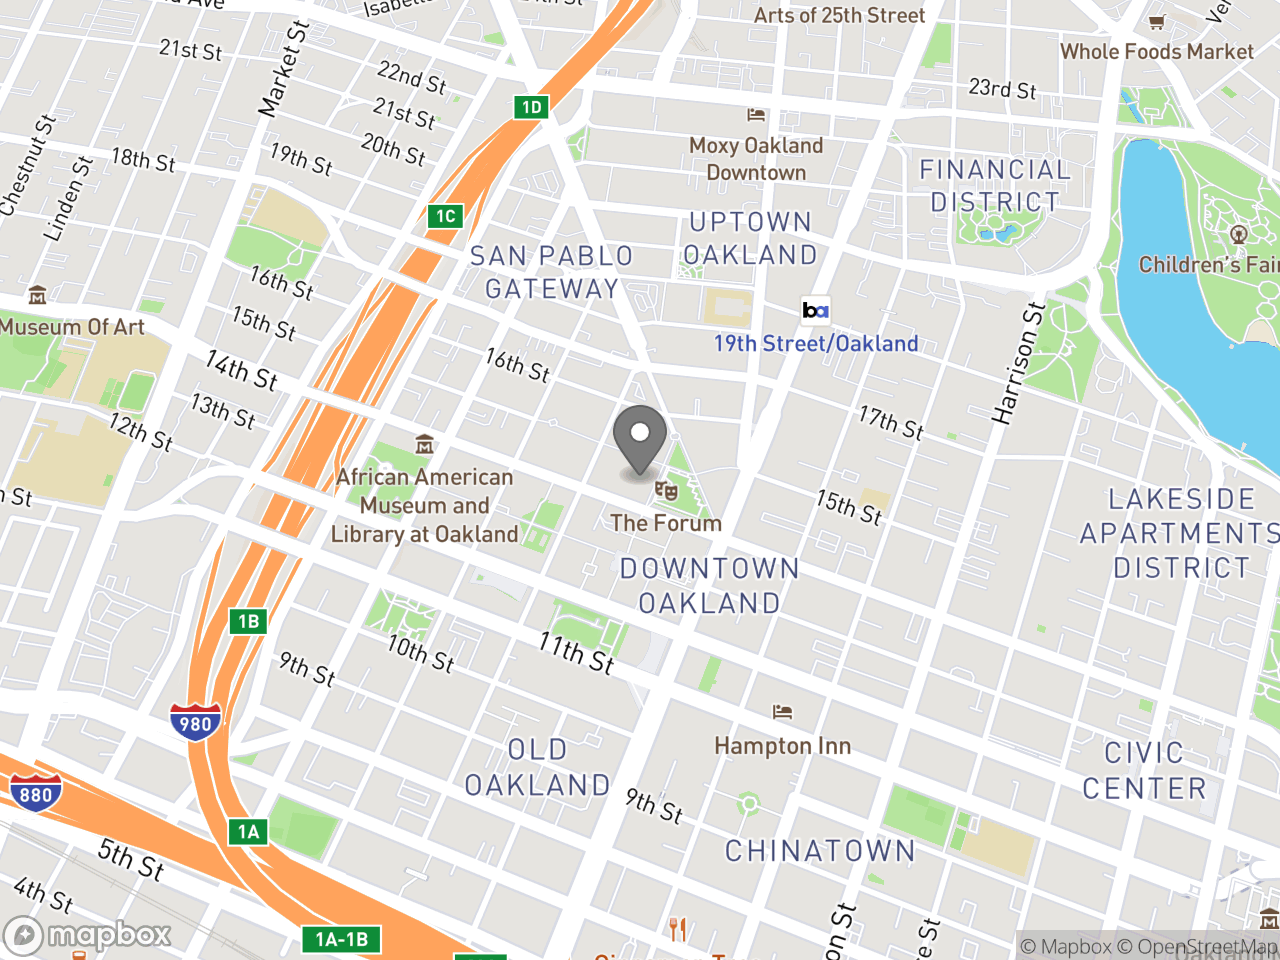 Map image for Police and Fire Retirement Board Meeting, October 31, 2018, located at 1 Frank H Ogawa Plaza in Oakland, CA 94612